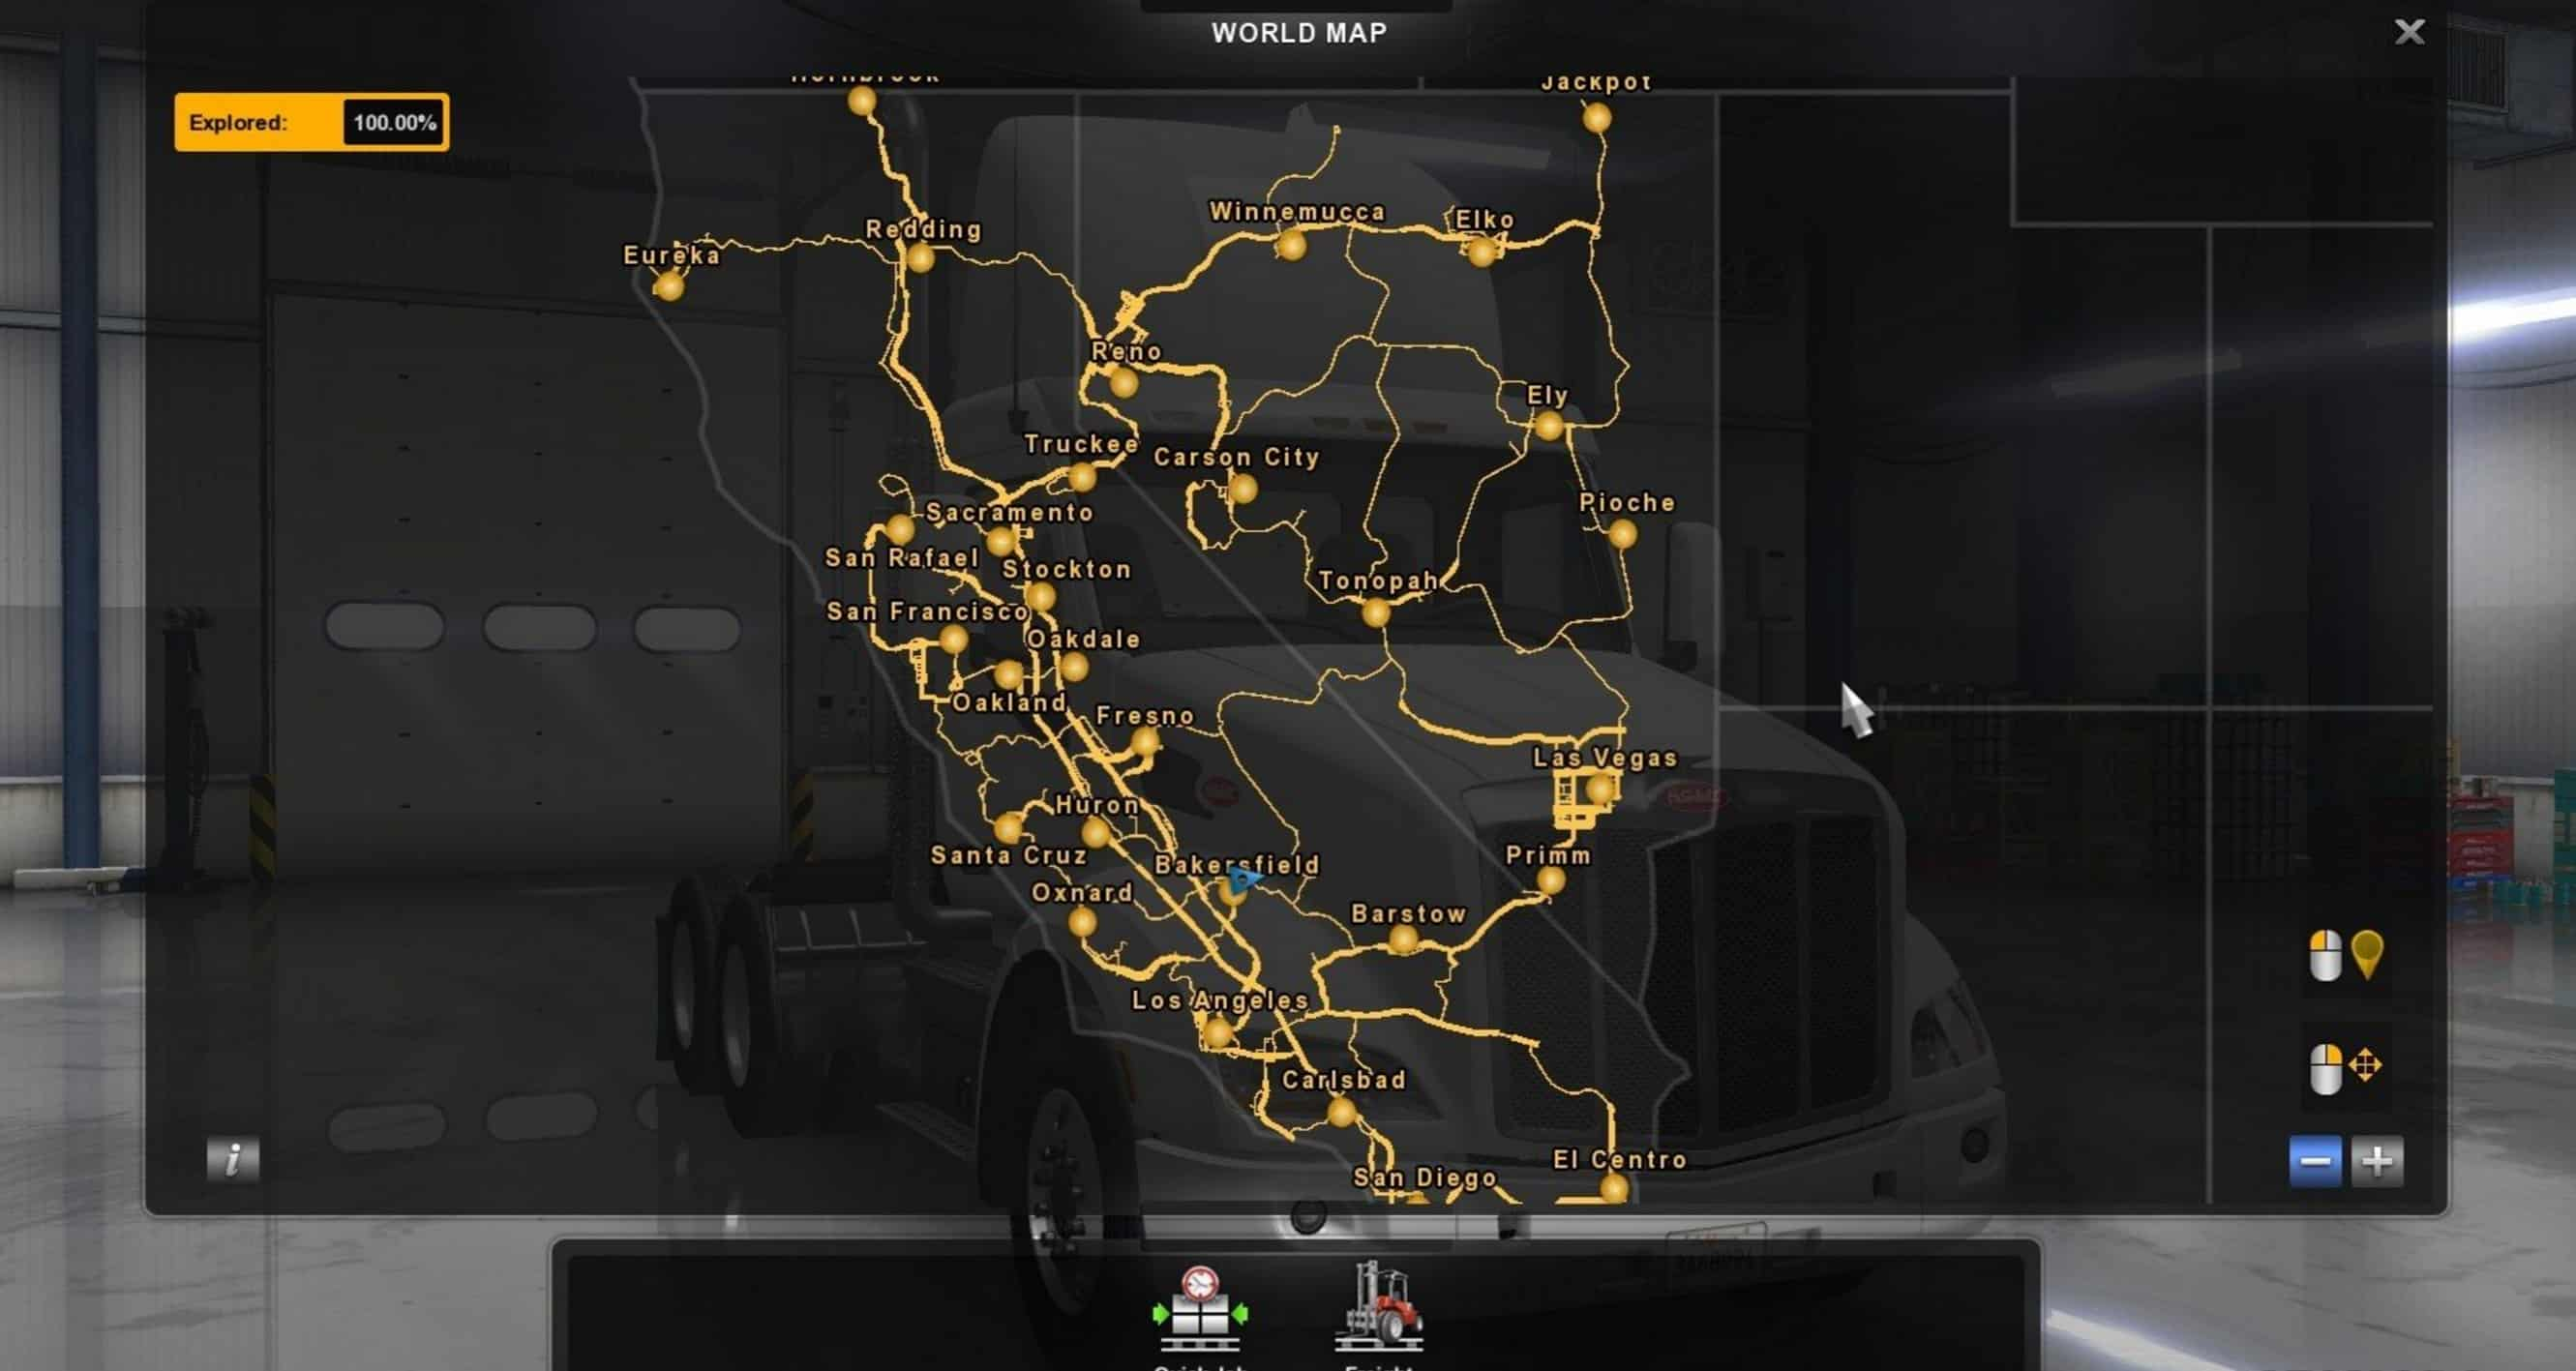 Savegame Complete 100% Map Explored - American Truck